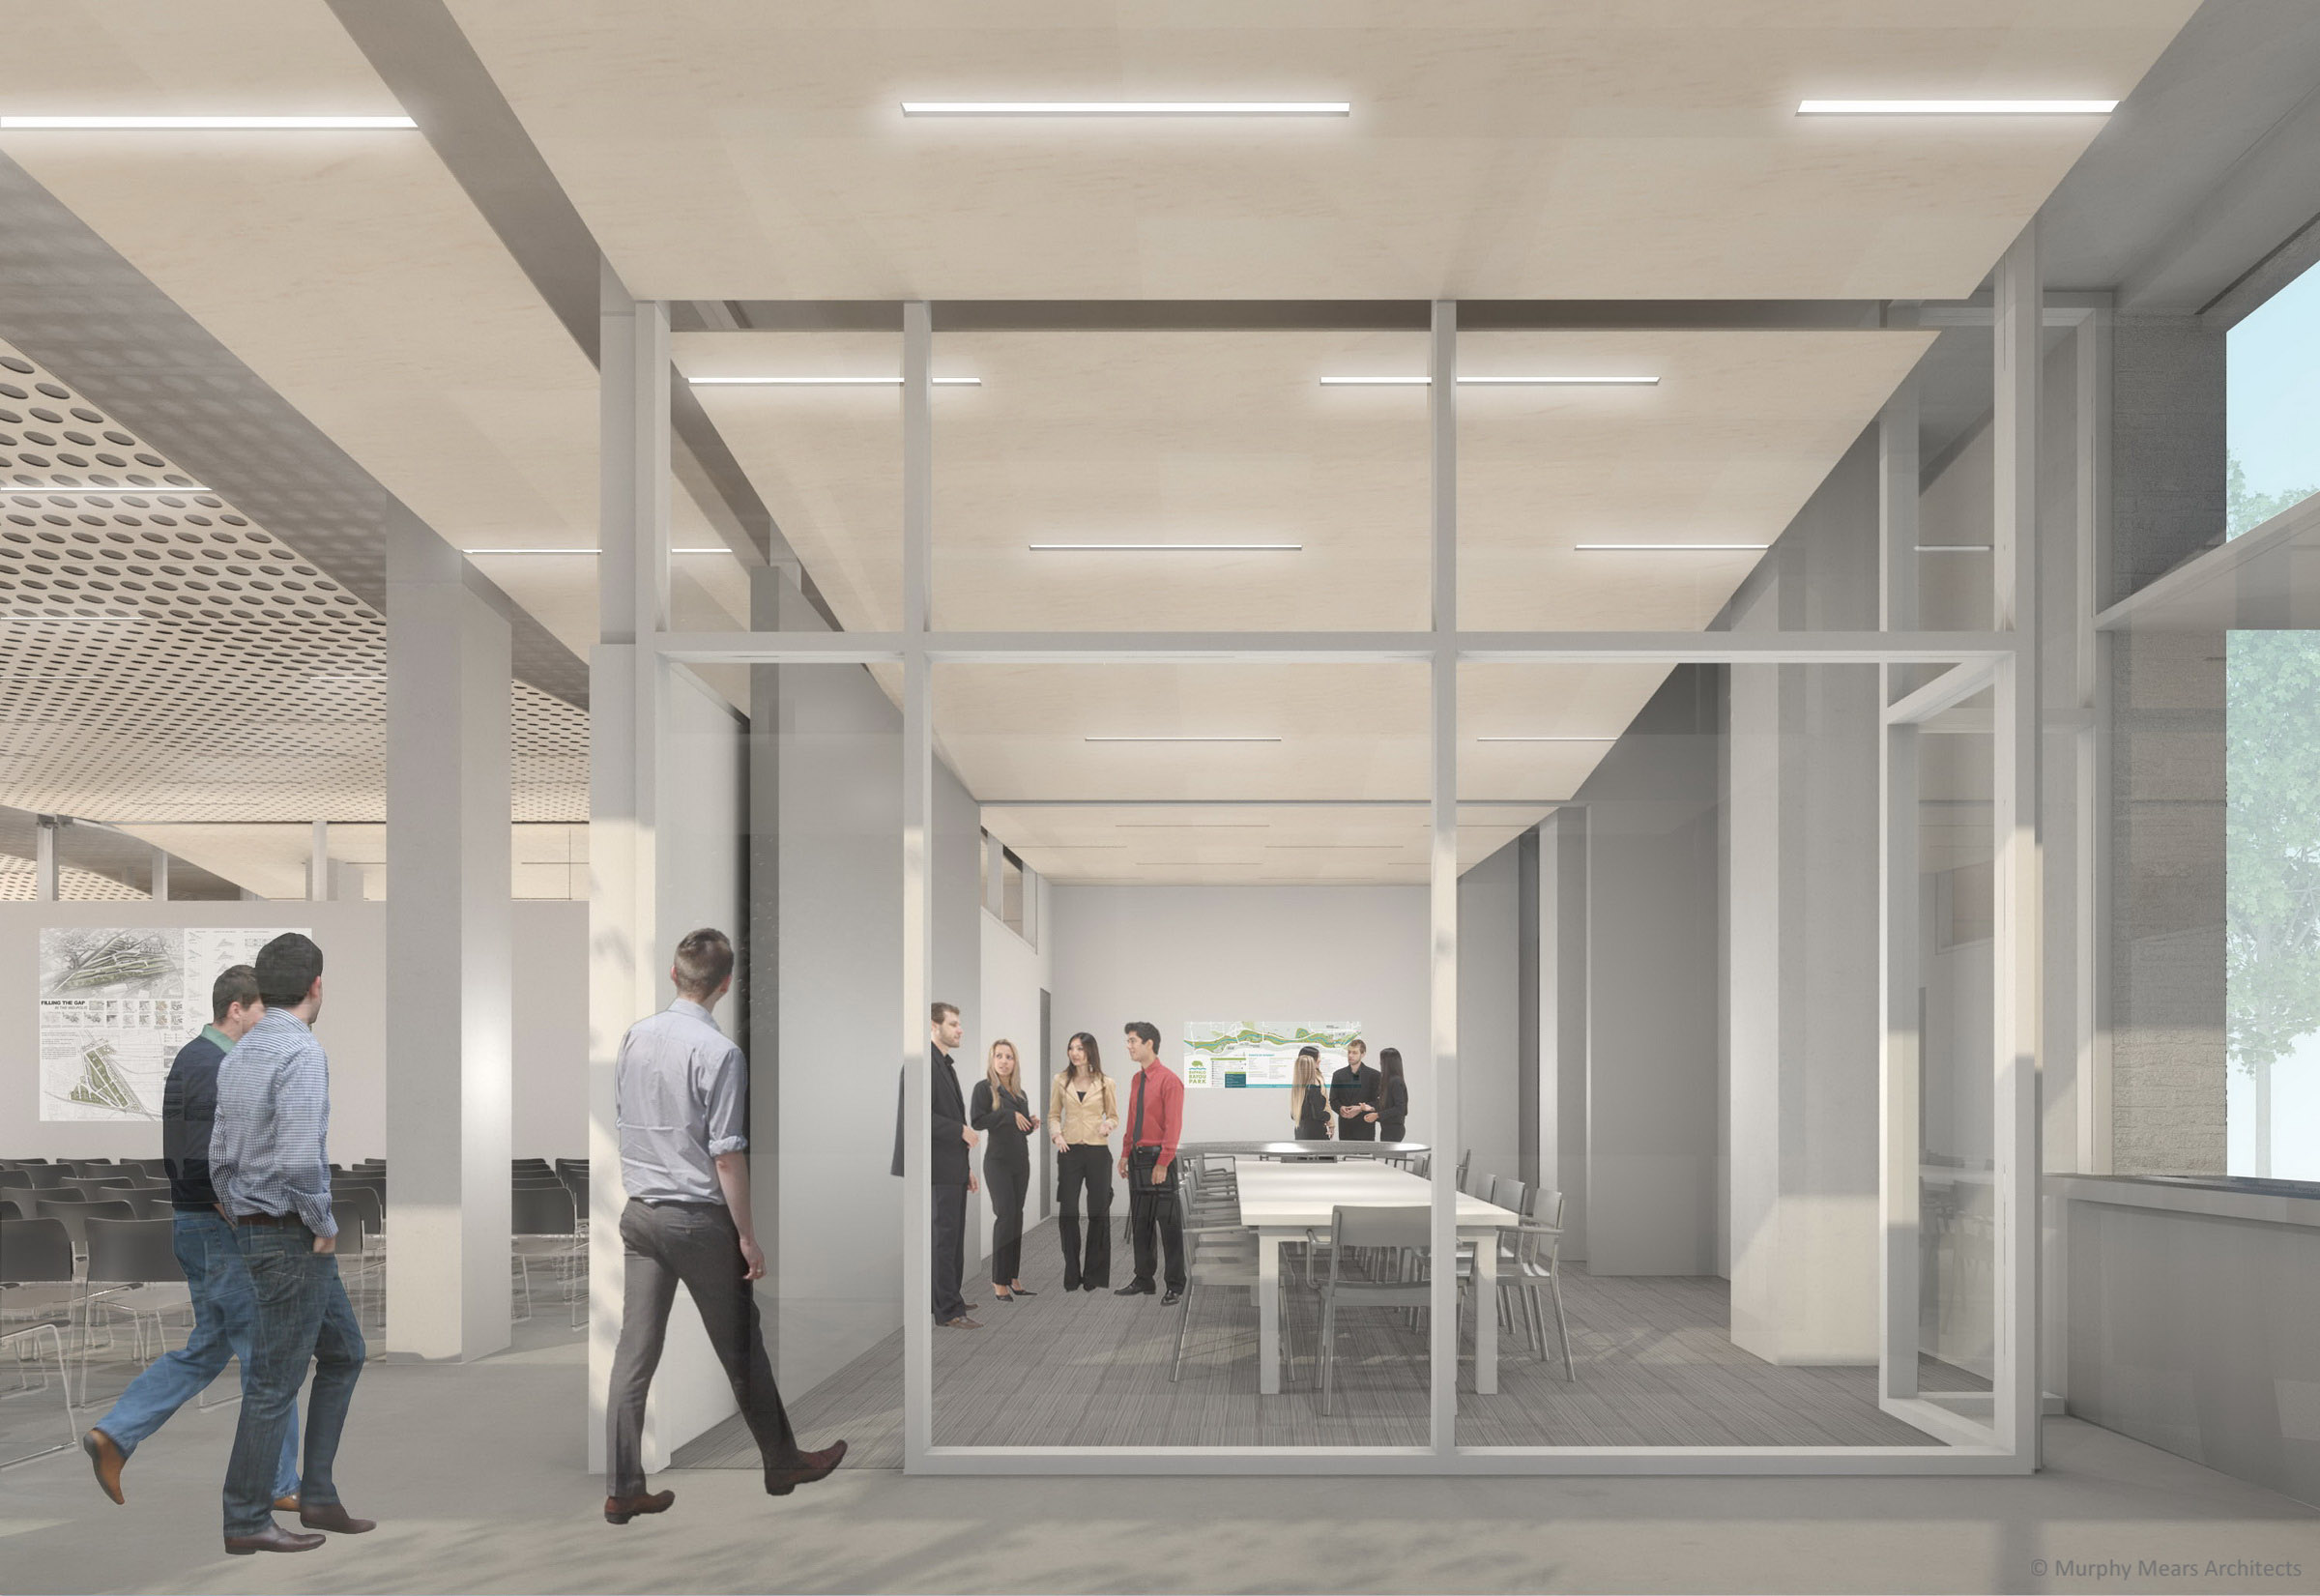 Architecture Center Houston - Competition Rendering - Operable partition open to form one large conference room.